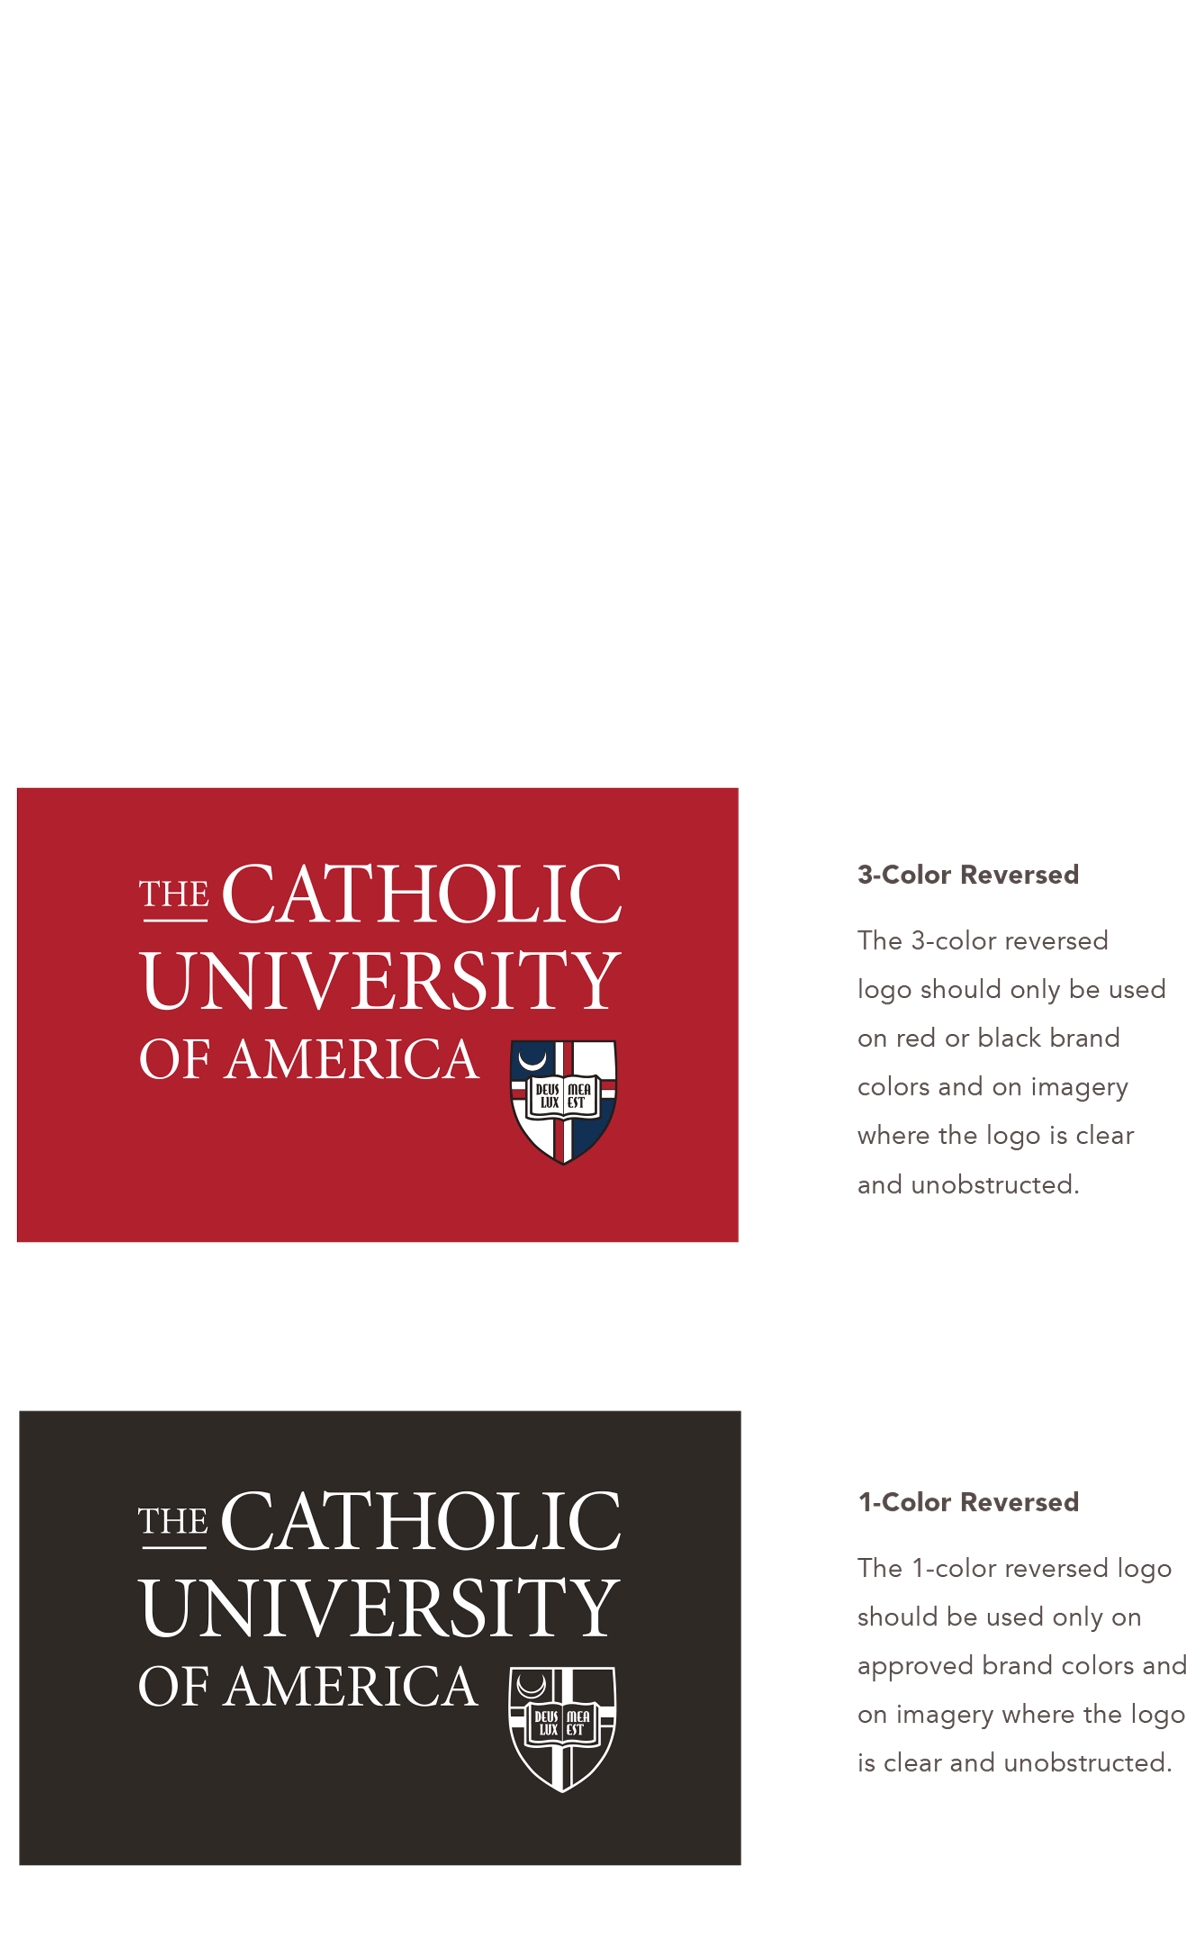 University Identity - logo color reversed